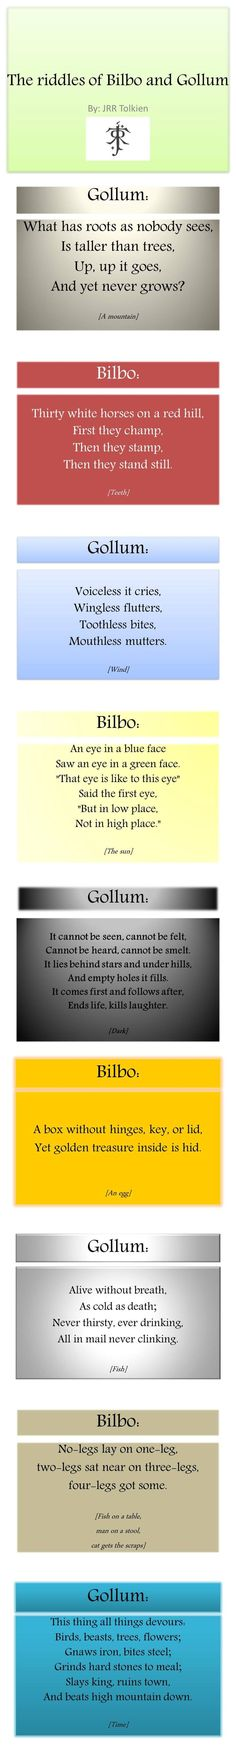 """Riddles Tolkien. The last one is by Bilbo and he asks Gollum, """"What is in my pocket?"""""""